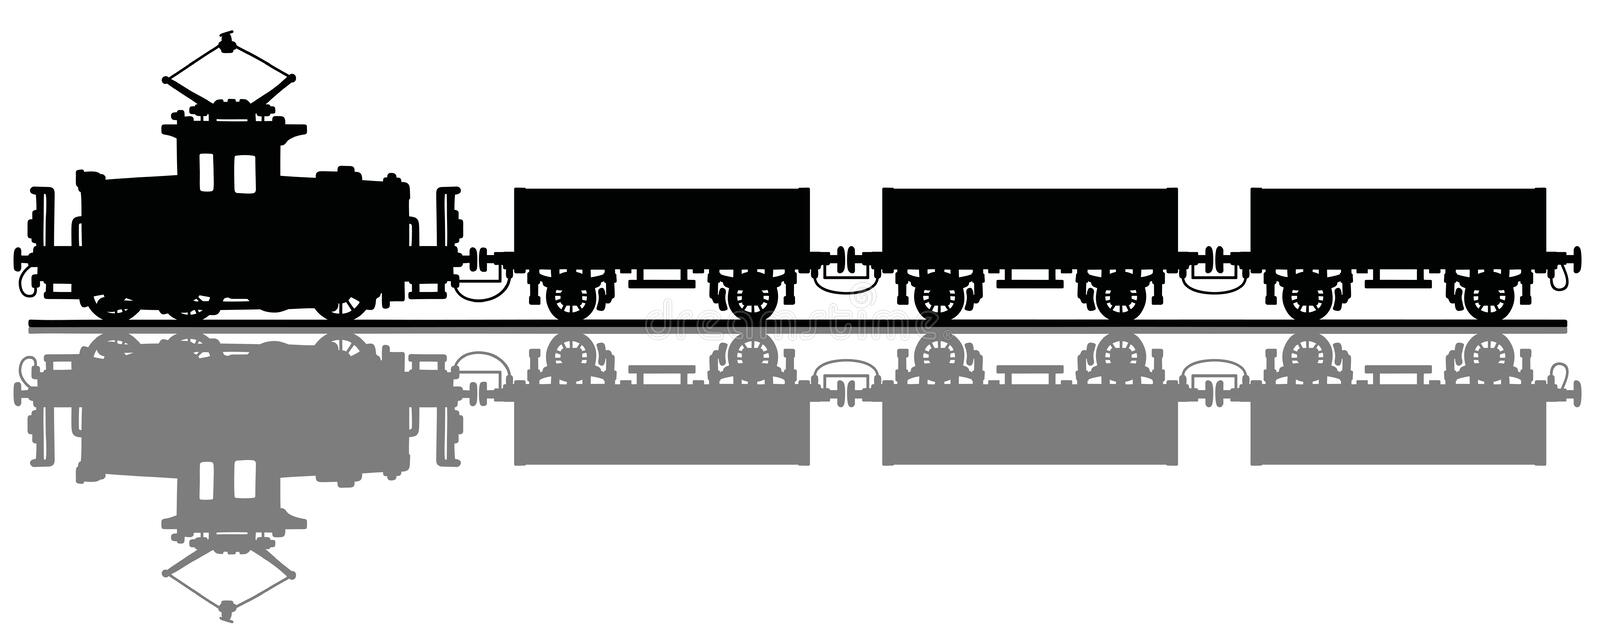 Old electric cargo train vector illustration